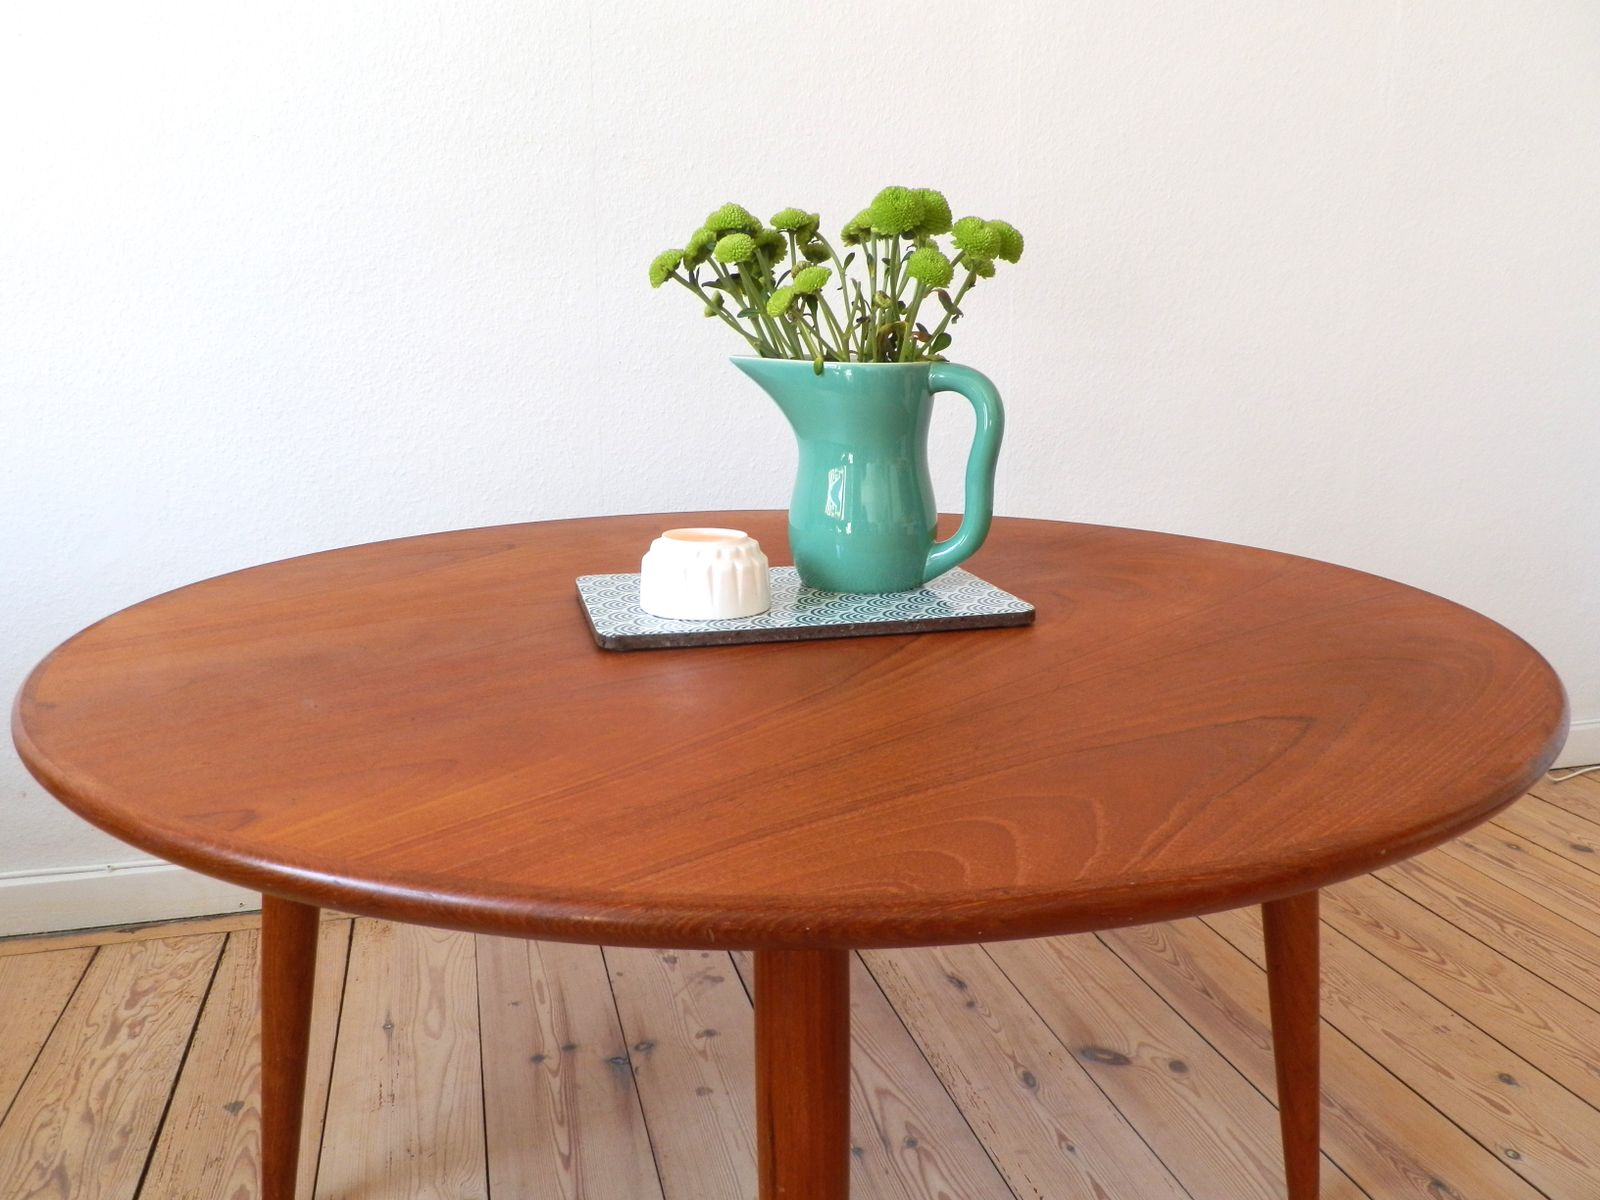 Scandinavian round teak coffee table 1960s for sale at pamono for Scandinavian design coffee table